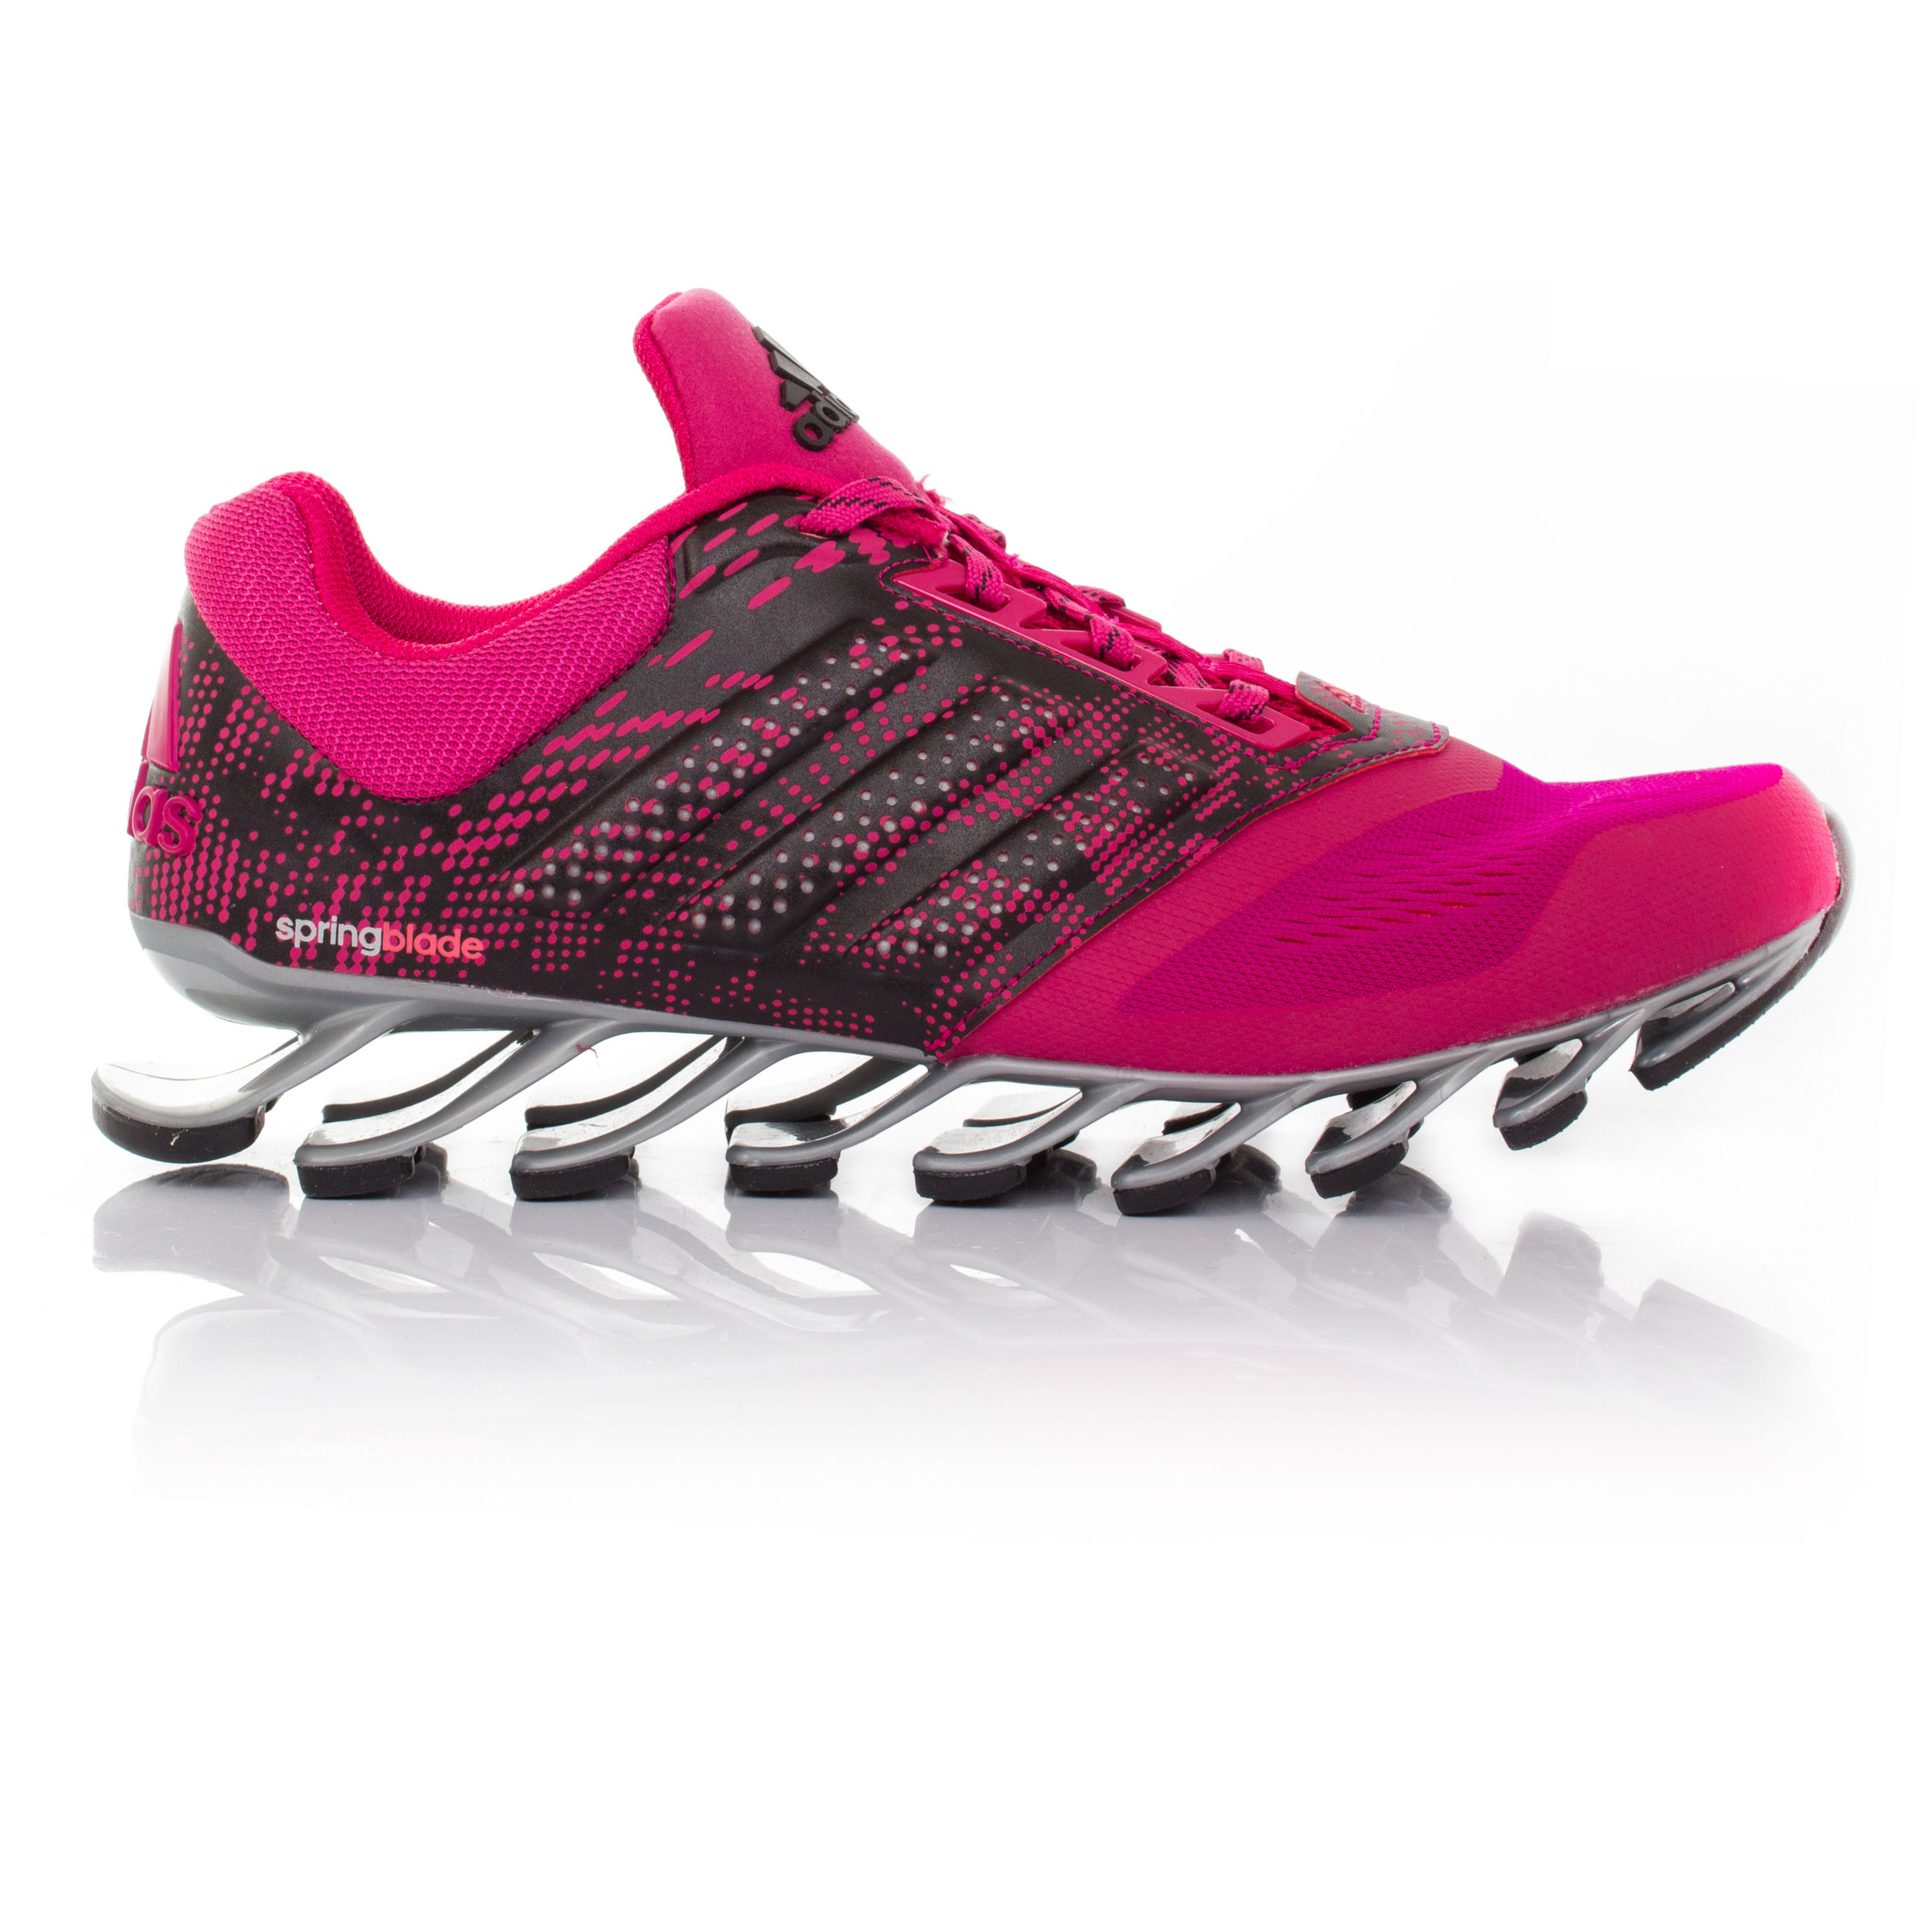 Adidas Springblade Drive 2 Womens Pink Running Road ...